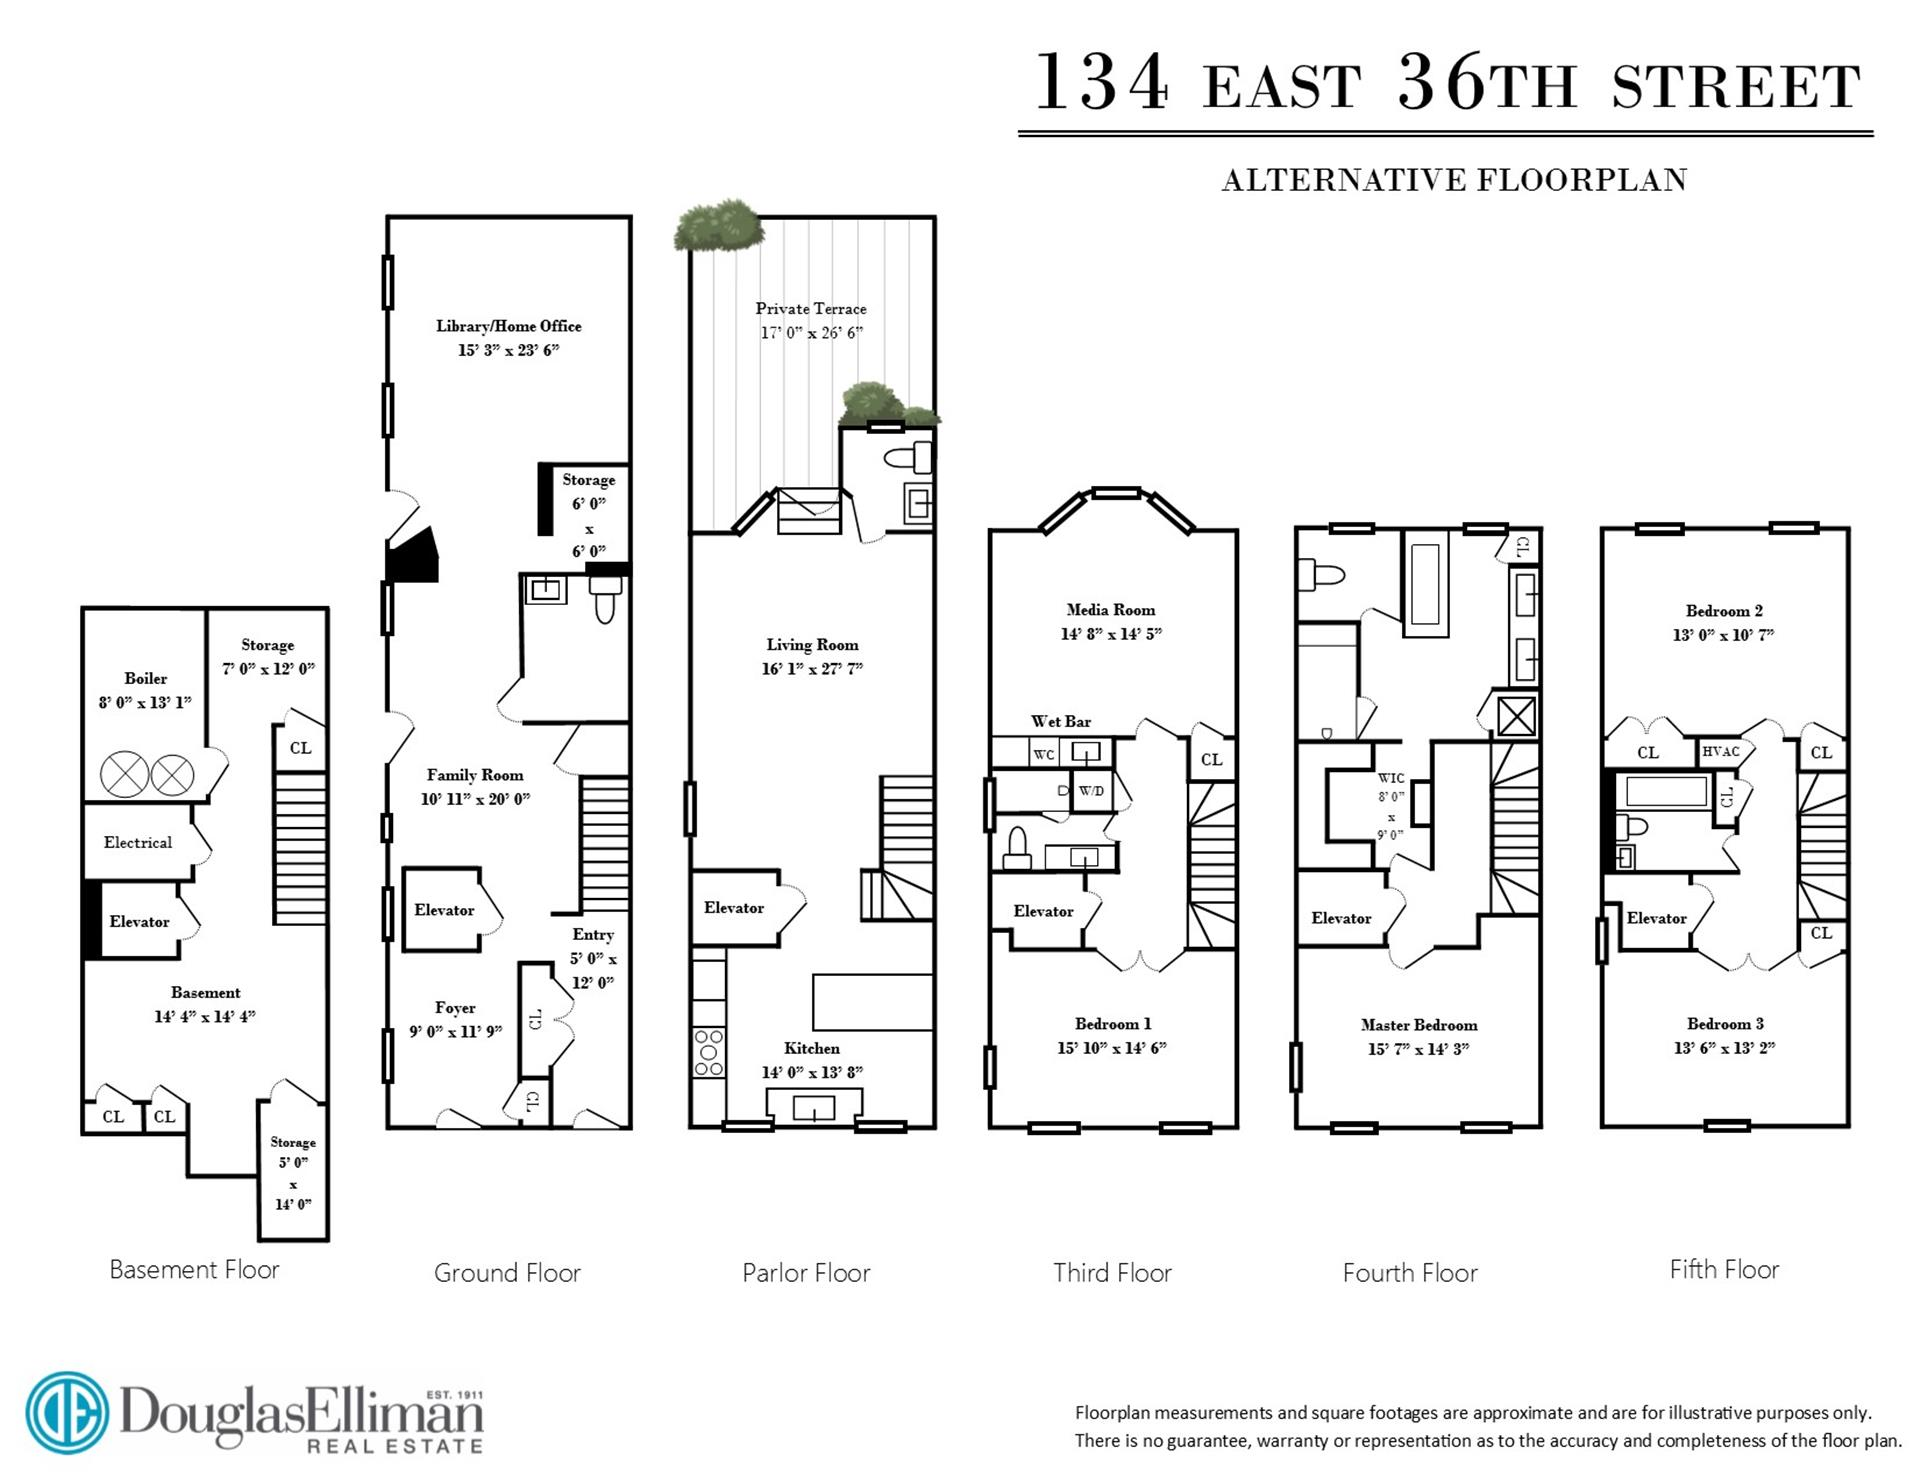 Floor plan of 134 East 36th Street - Murray Hill, New York